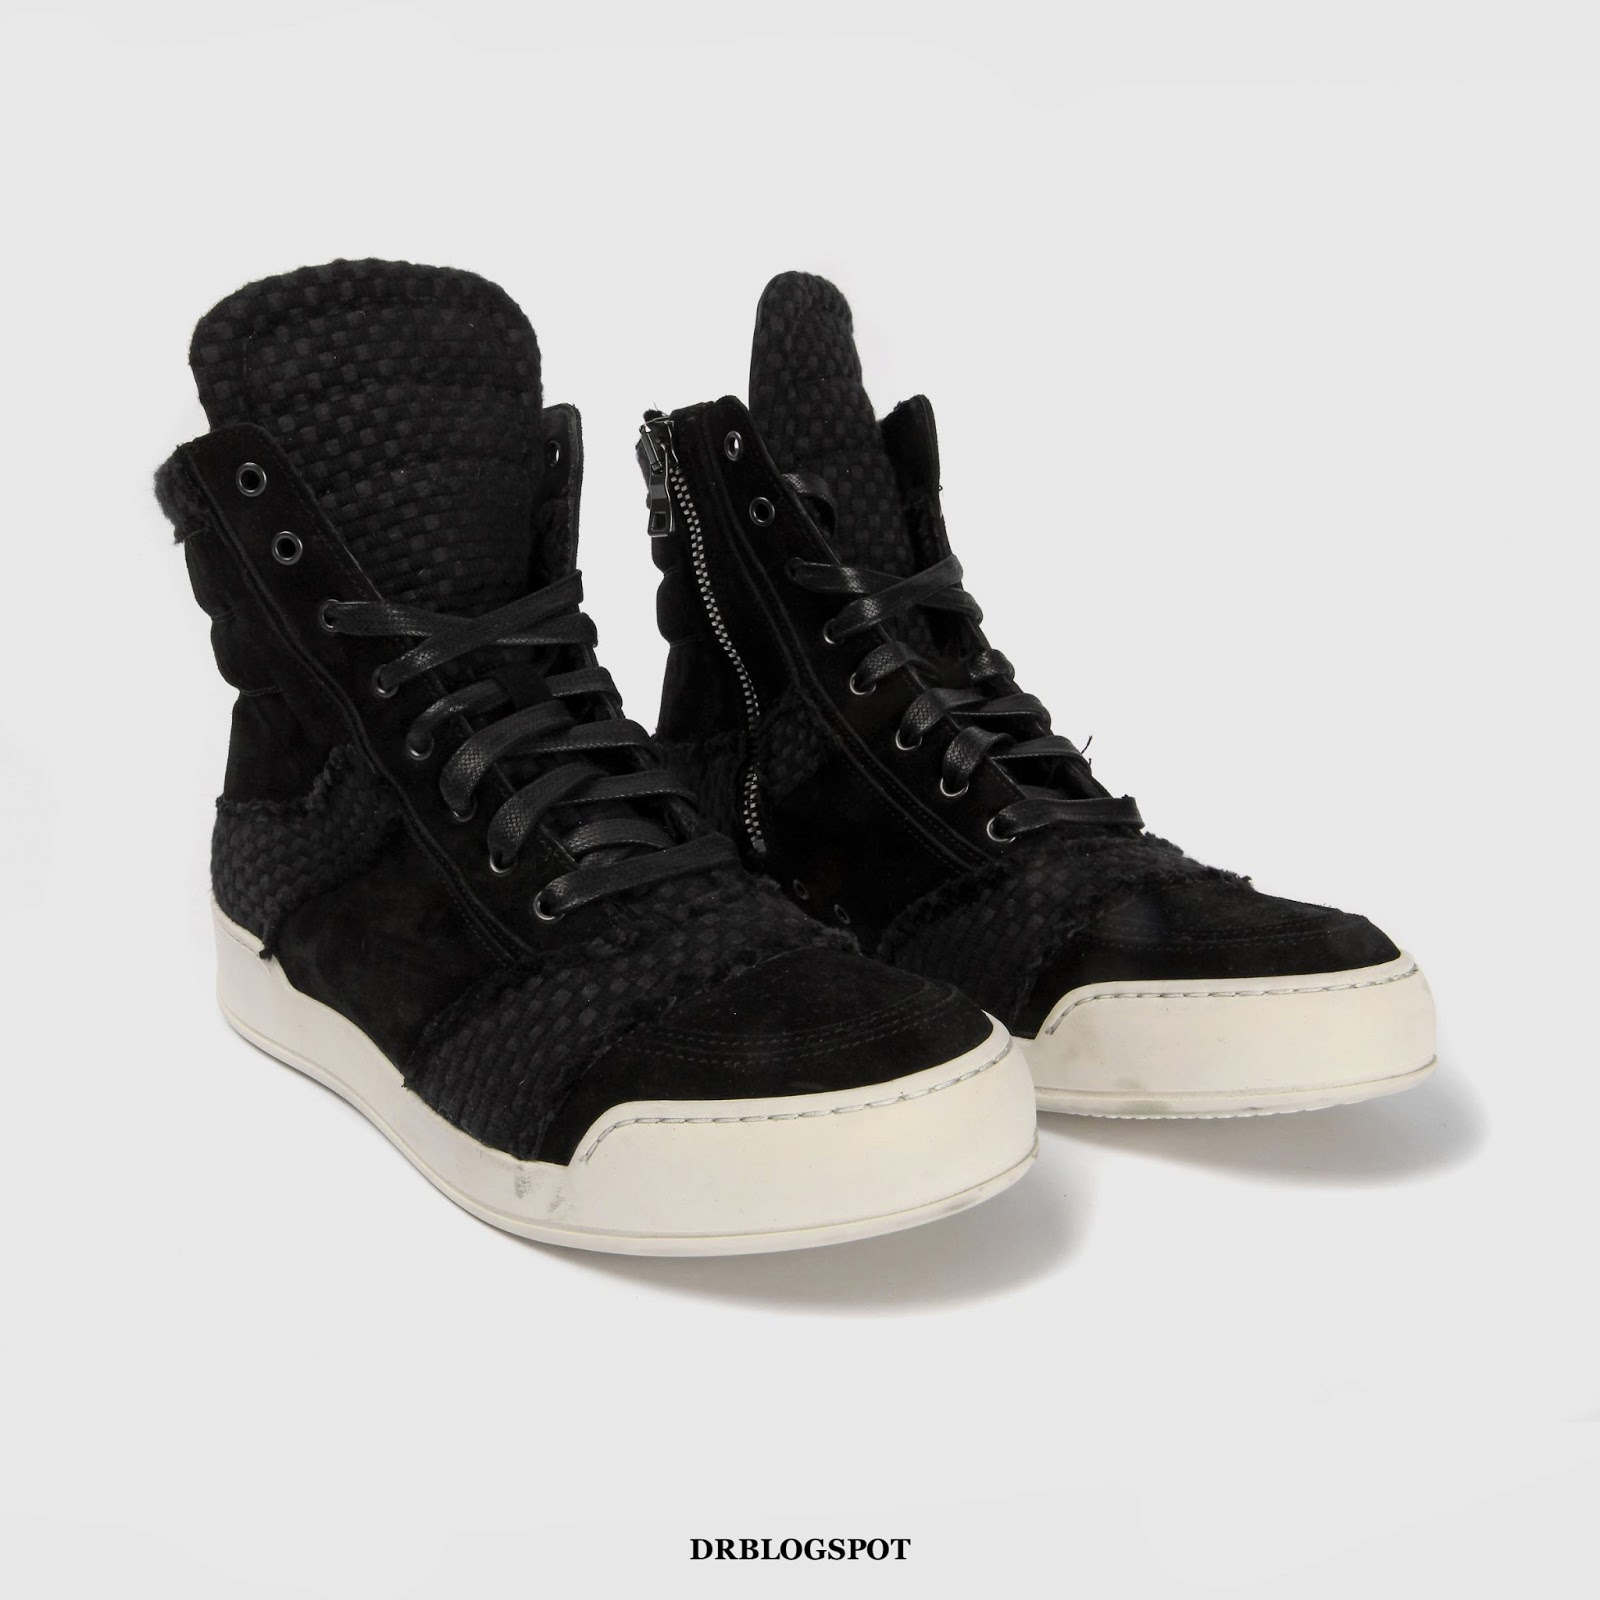 6859741cb05 Balmain Black Suede and Leather White Lace-Up High-Top Sneakers – €705.00 .  ...